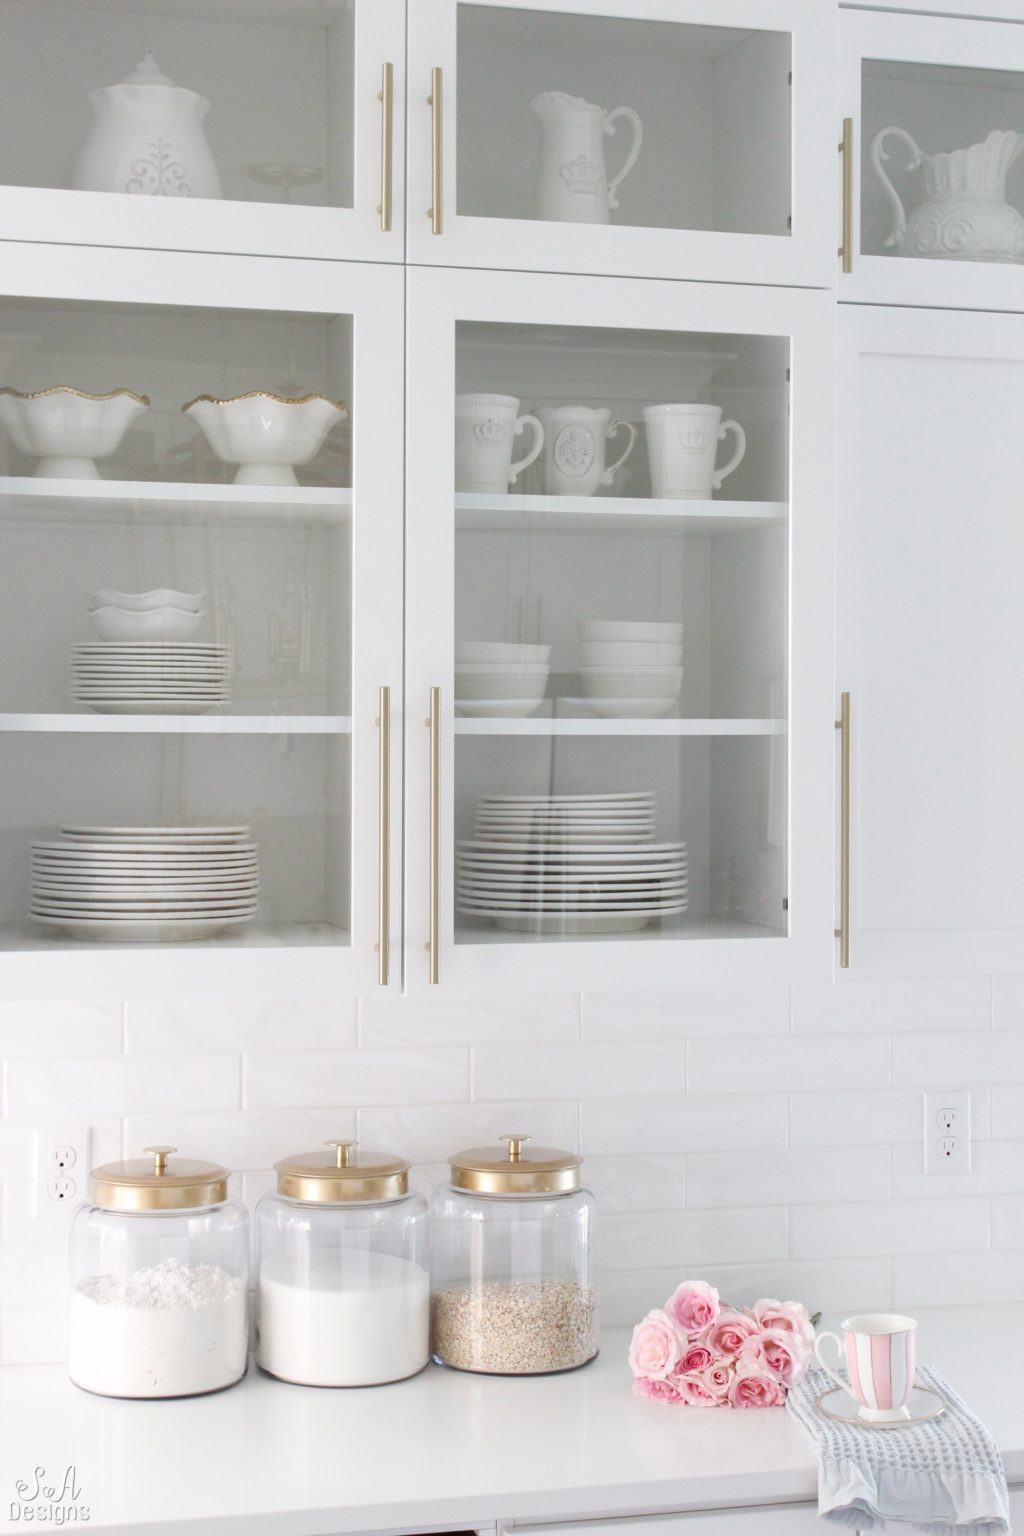 DIY Gold & Glass Canisters For The Kitchen - Summer Adams